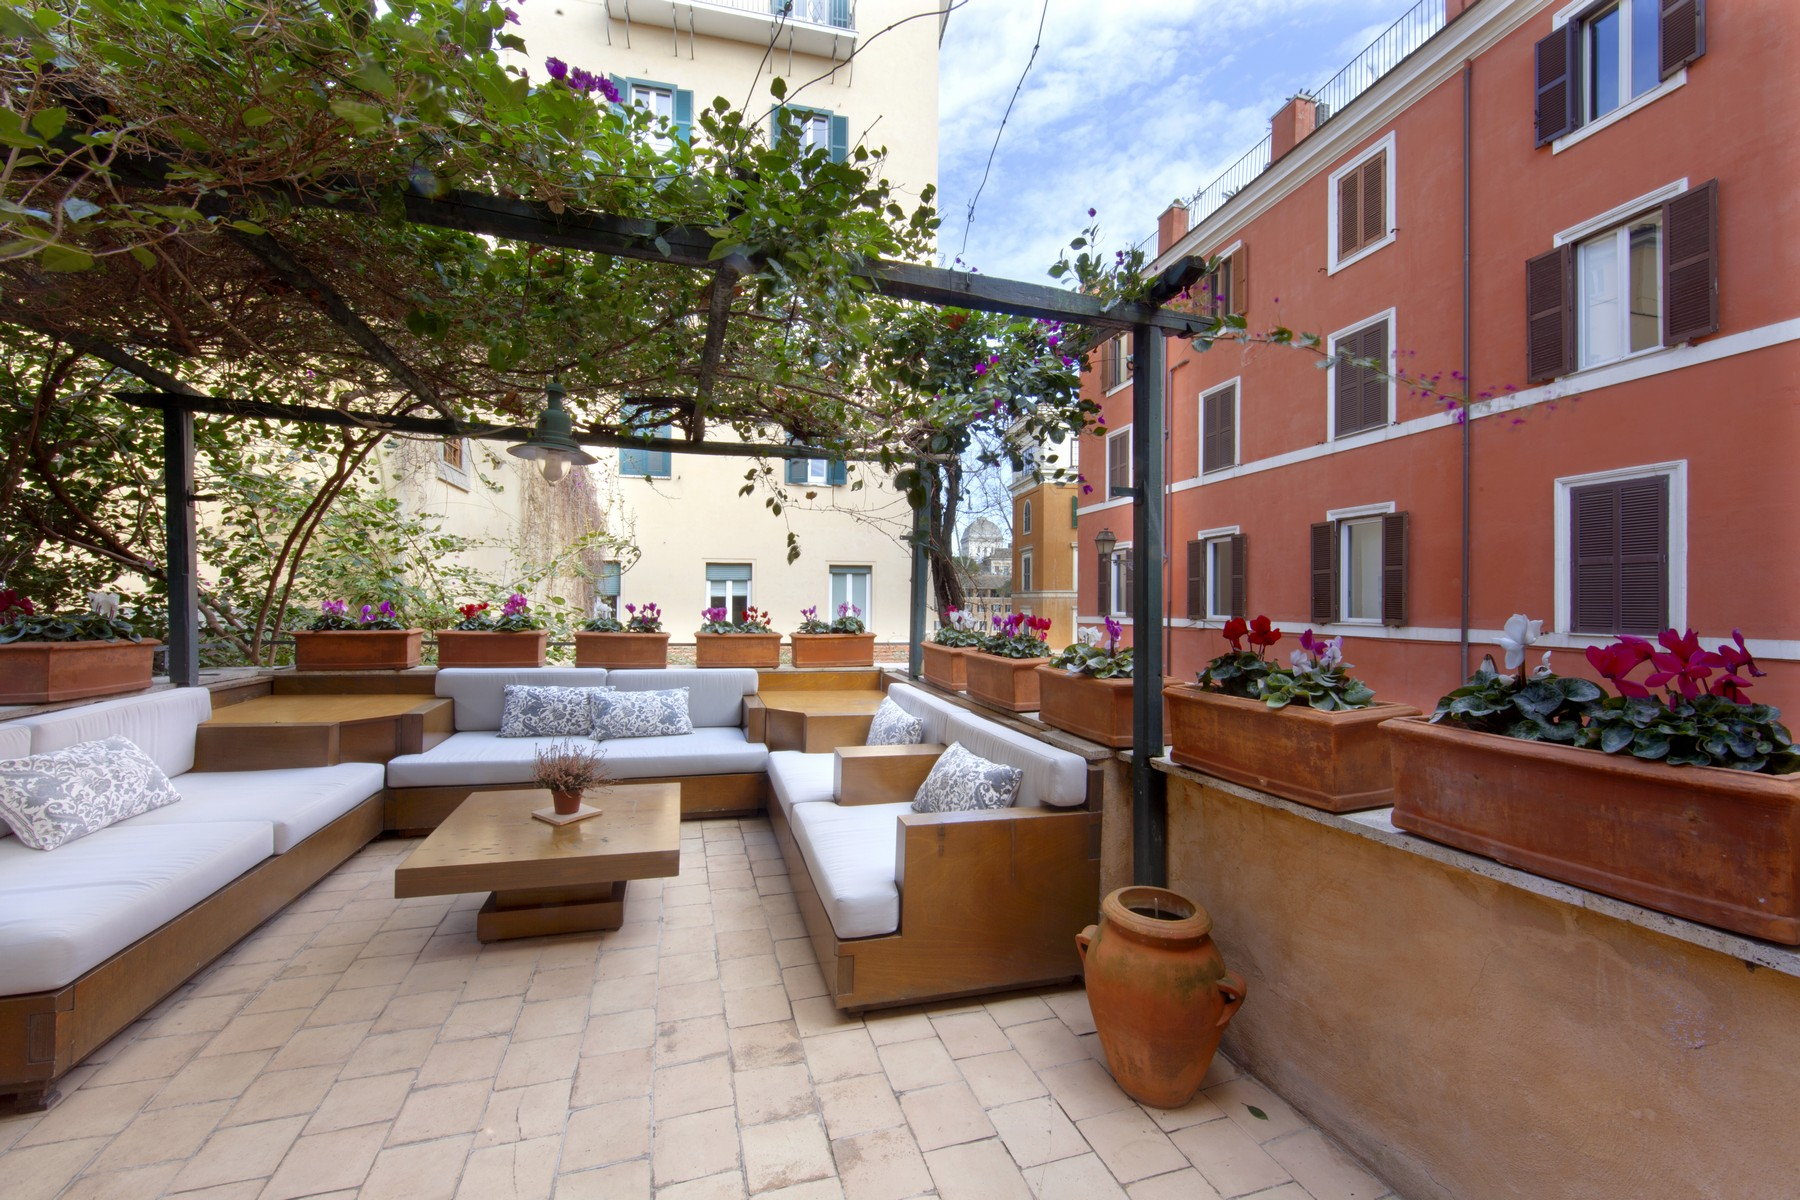 Single Family Home for Rent at Charming independent building of the medieval ages Vicolo della Luce Rome, 00195 Italy